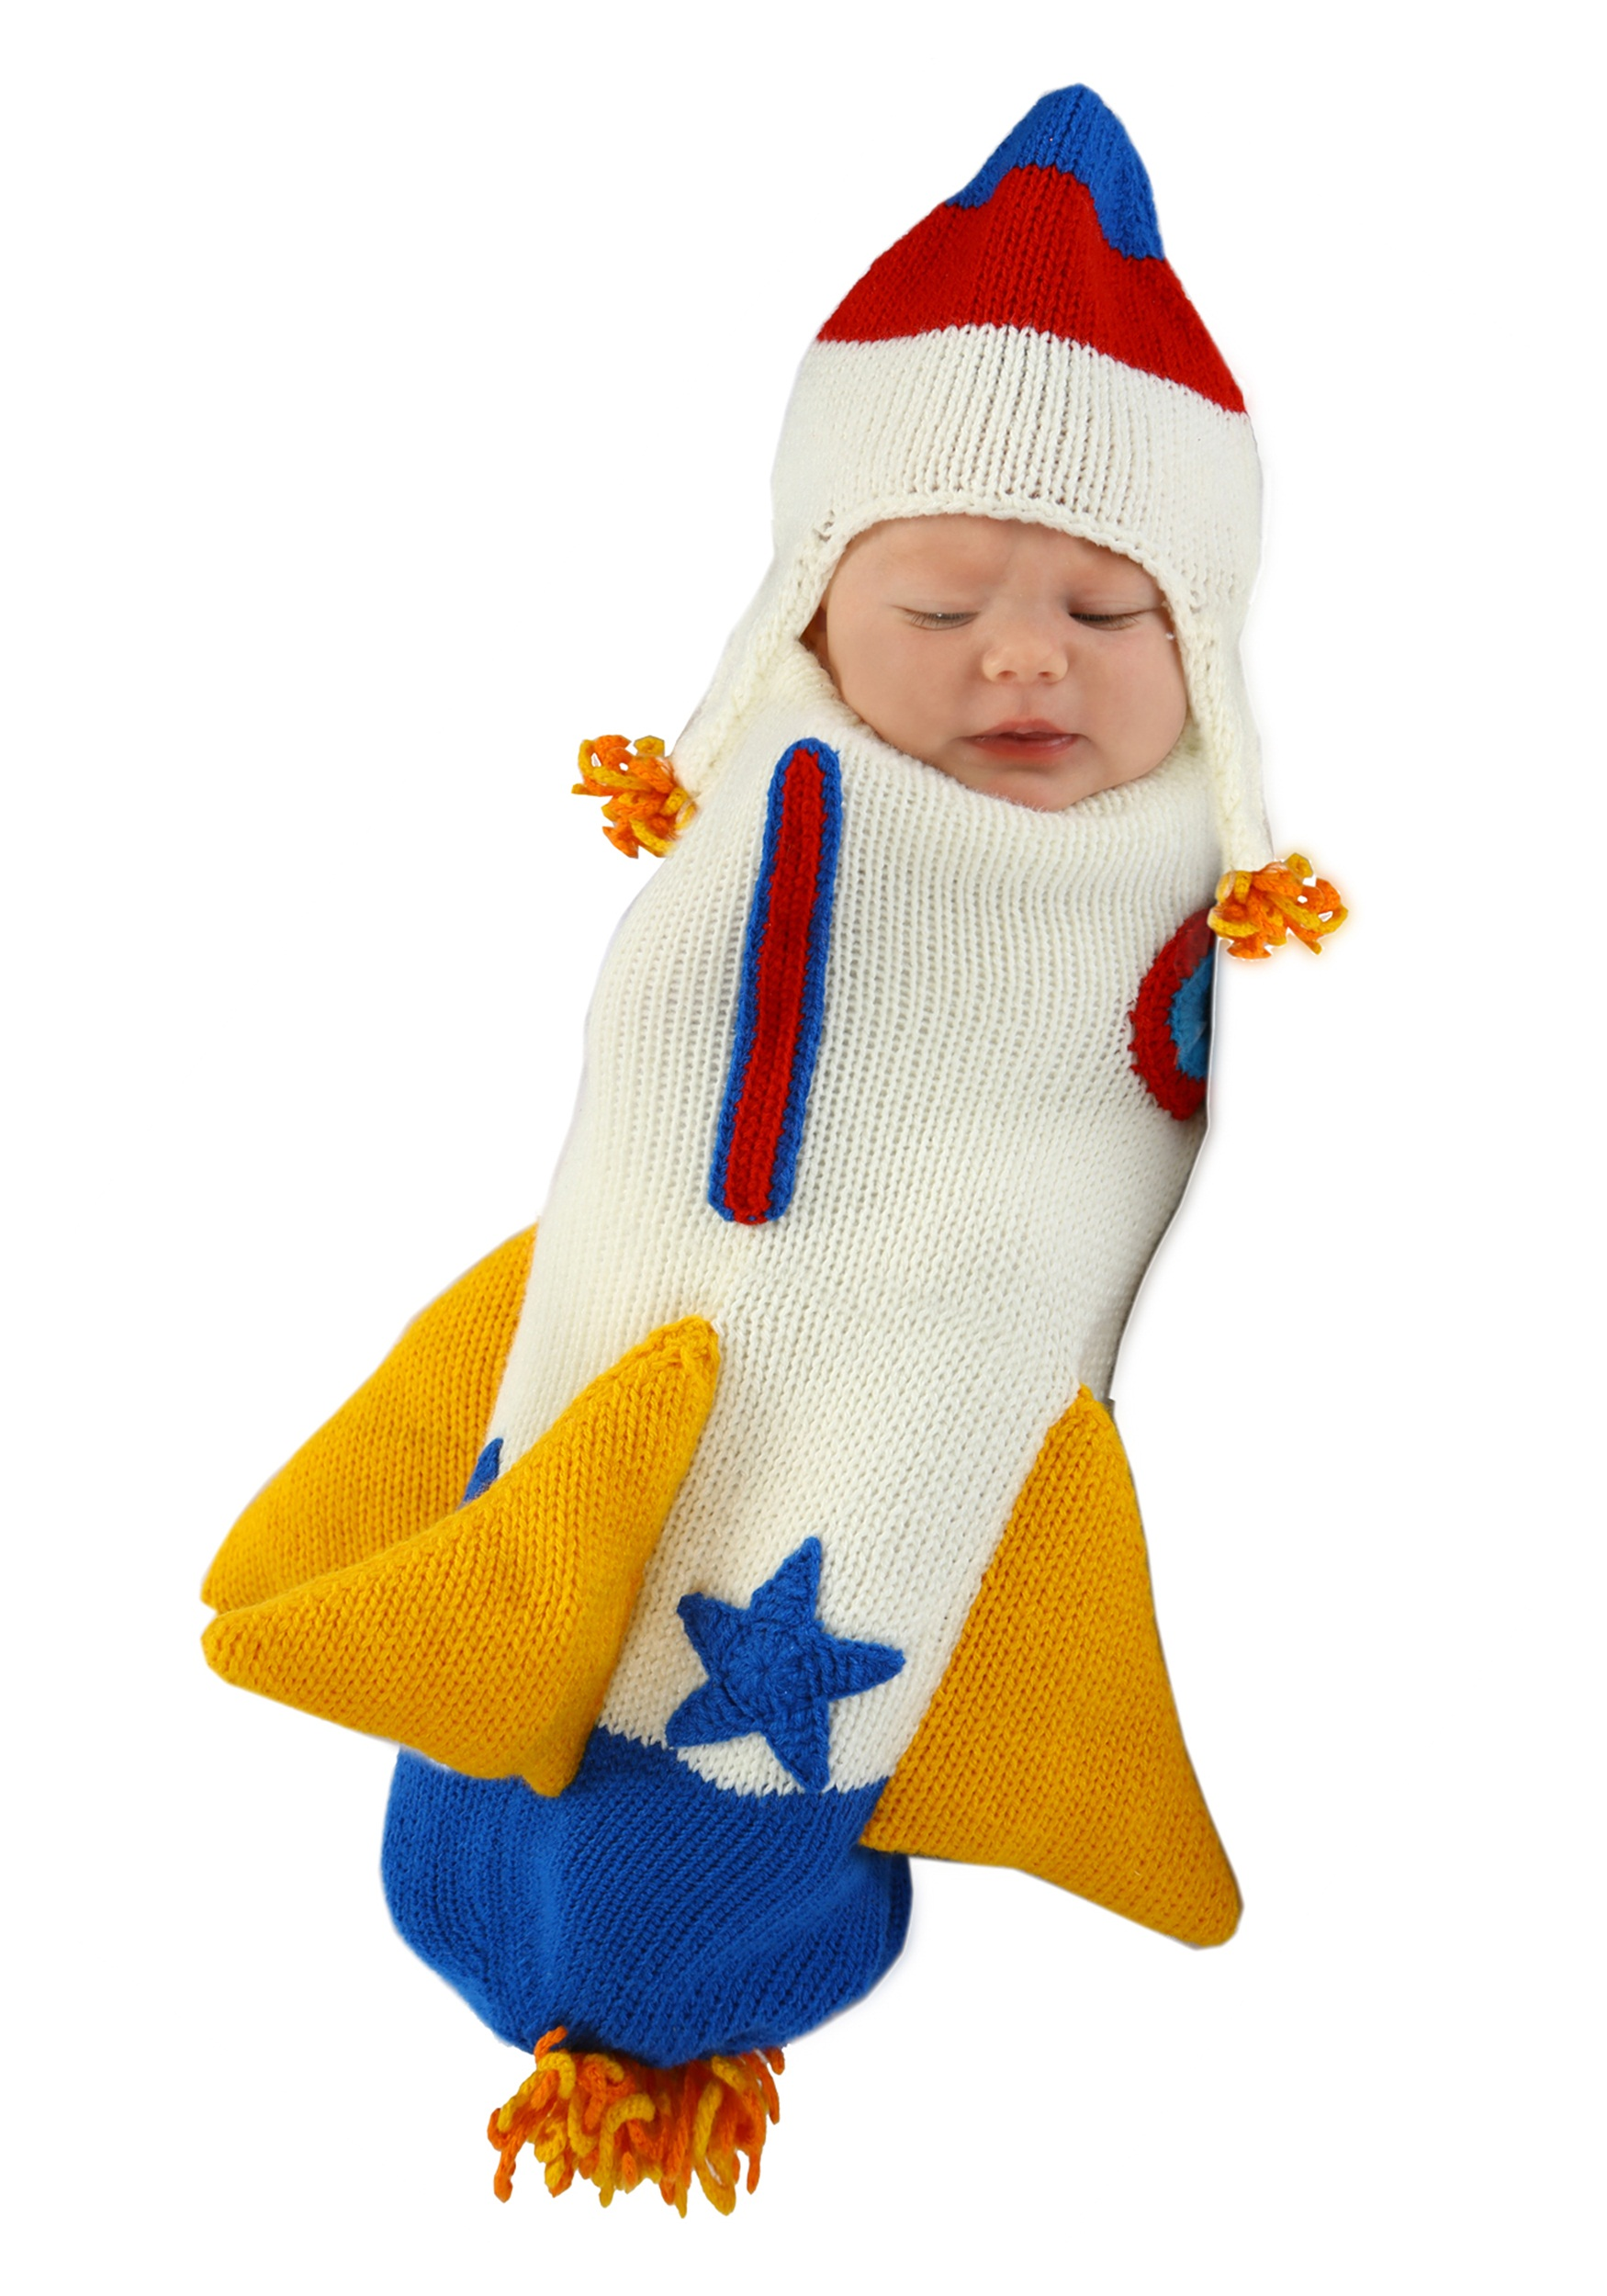 Roger the Rocket Ship Knitted Bunting  Halloween Costumes